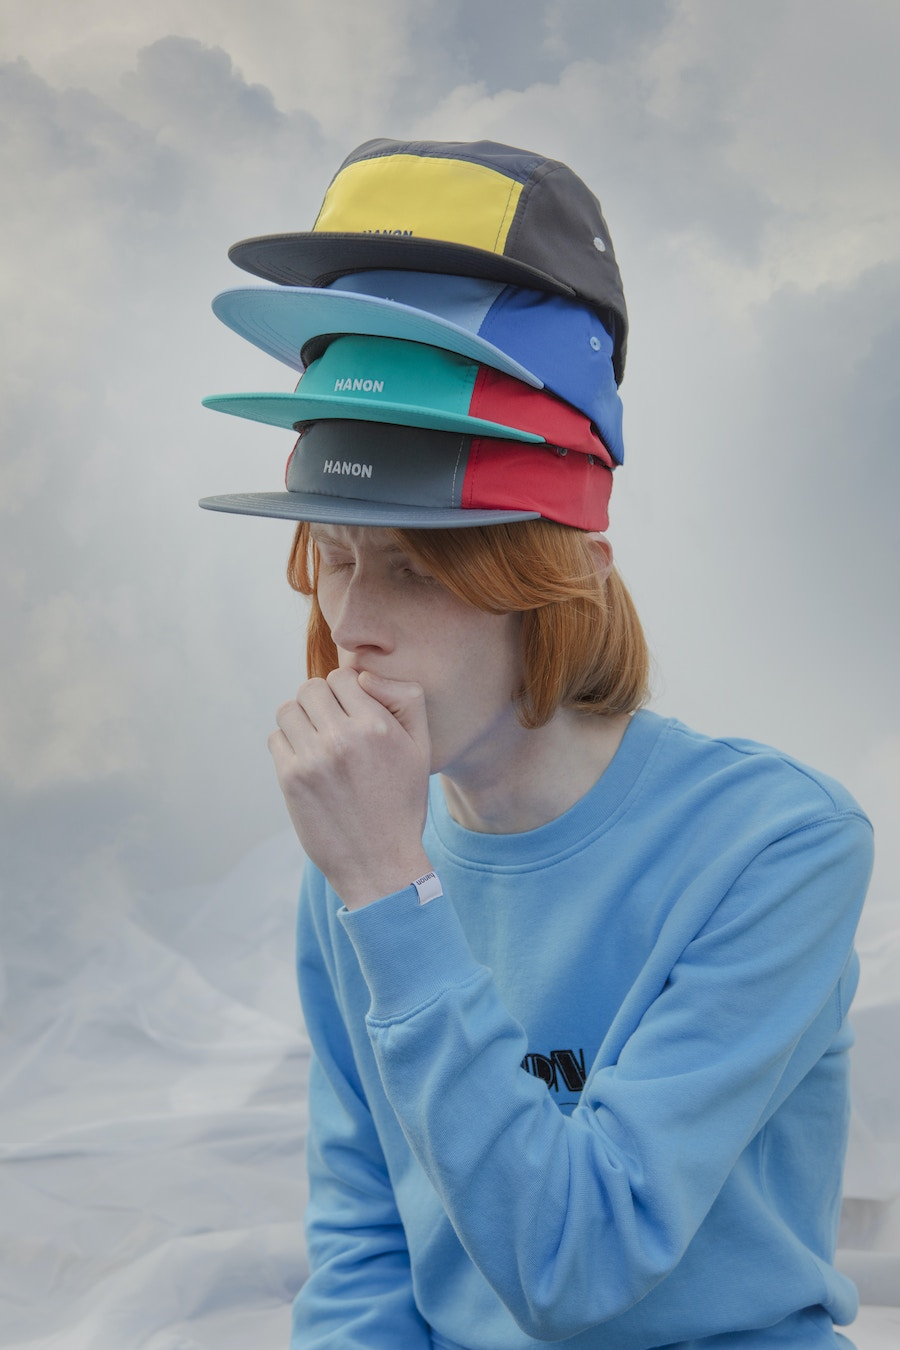 A model wearing four different coloured baseball caps on his head